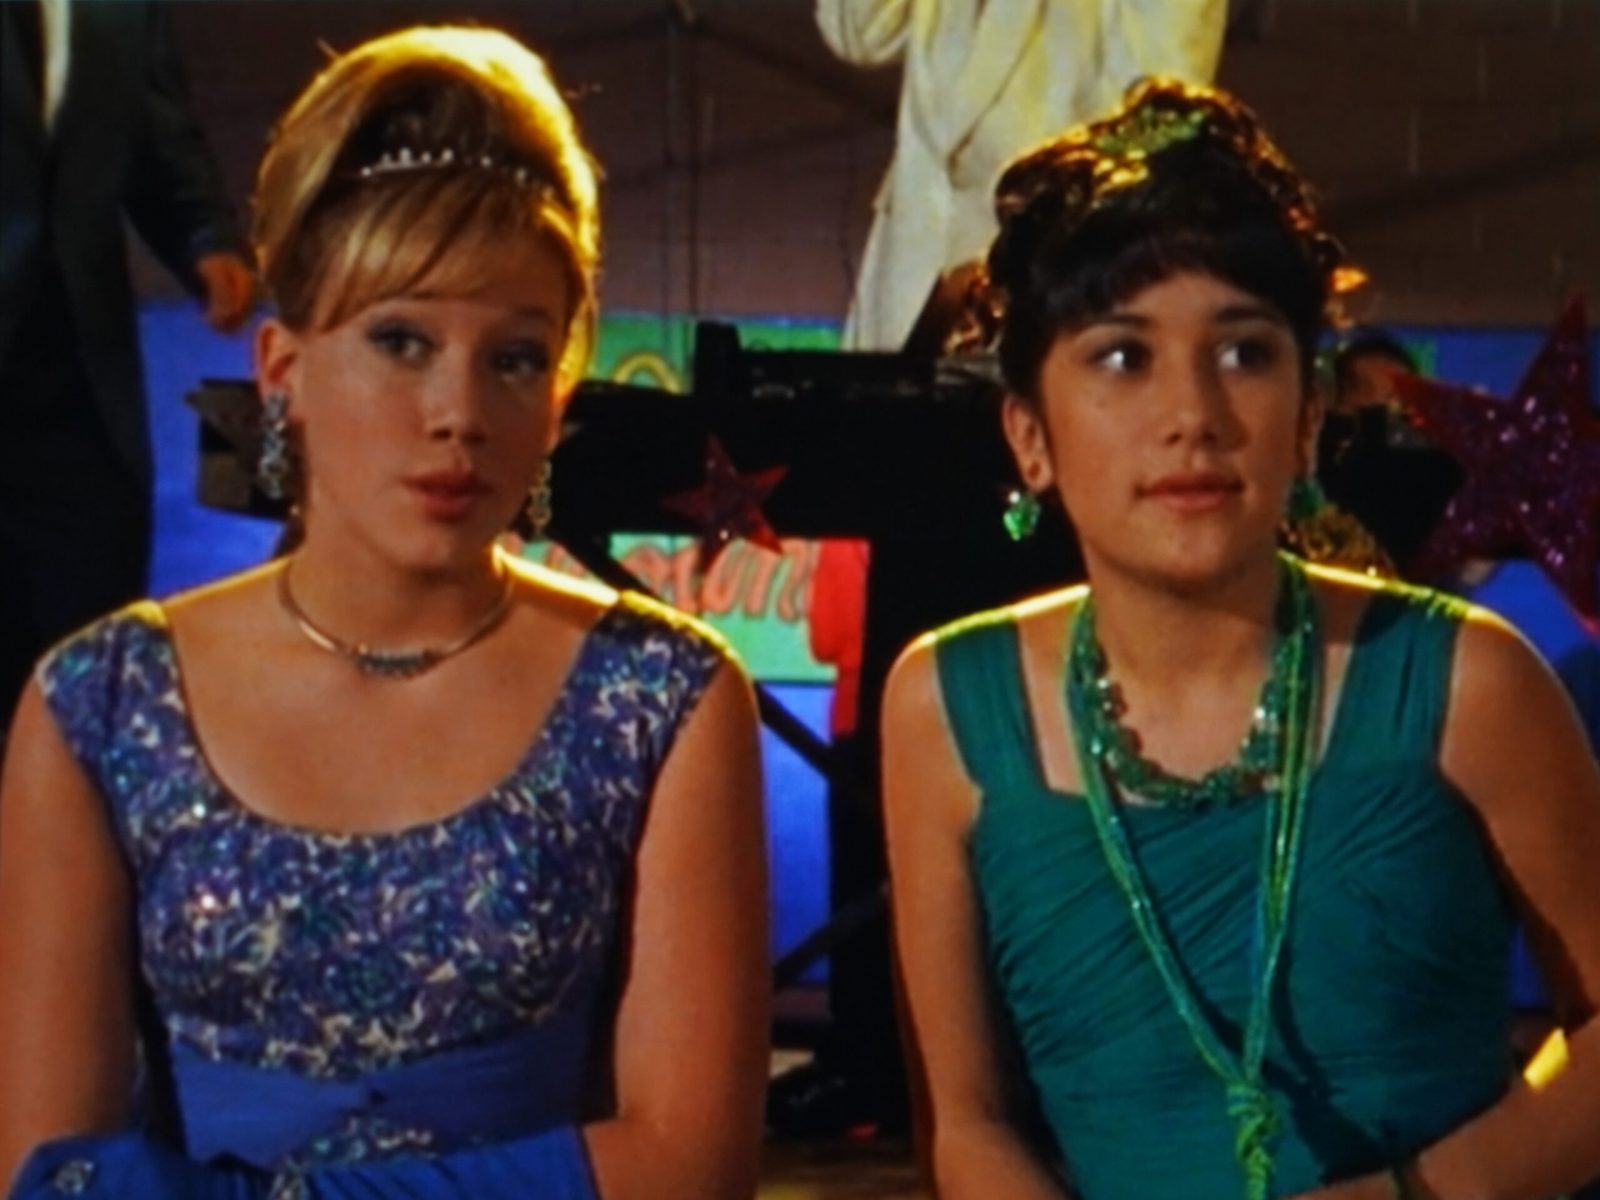 Lizzie and Miranda at the School Dance